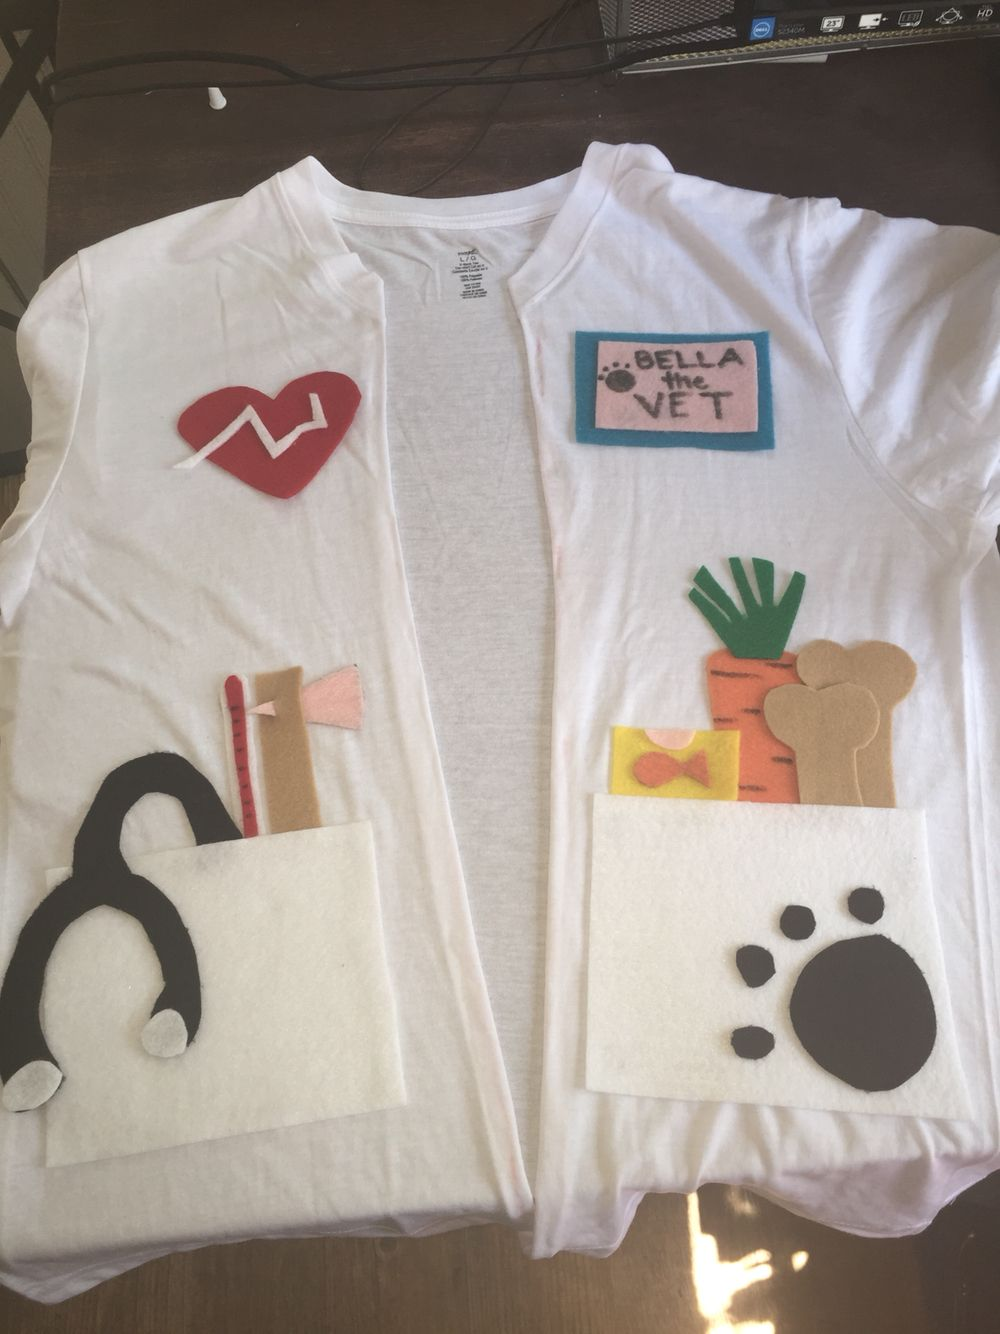 Vet Costume Out Of A T Shirt And Felt Diy Pinterest